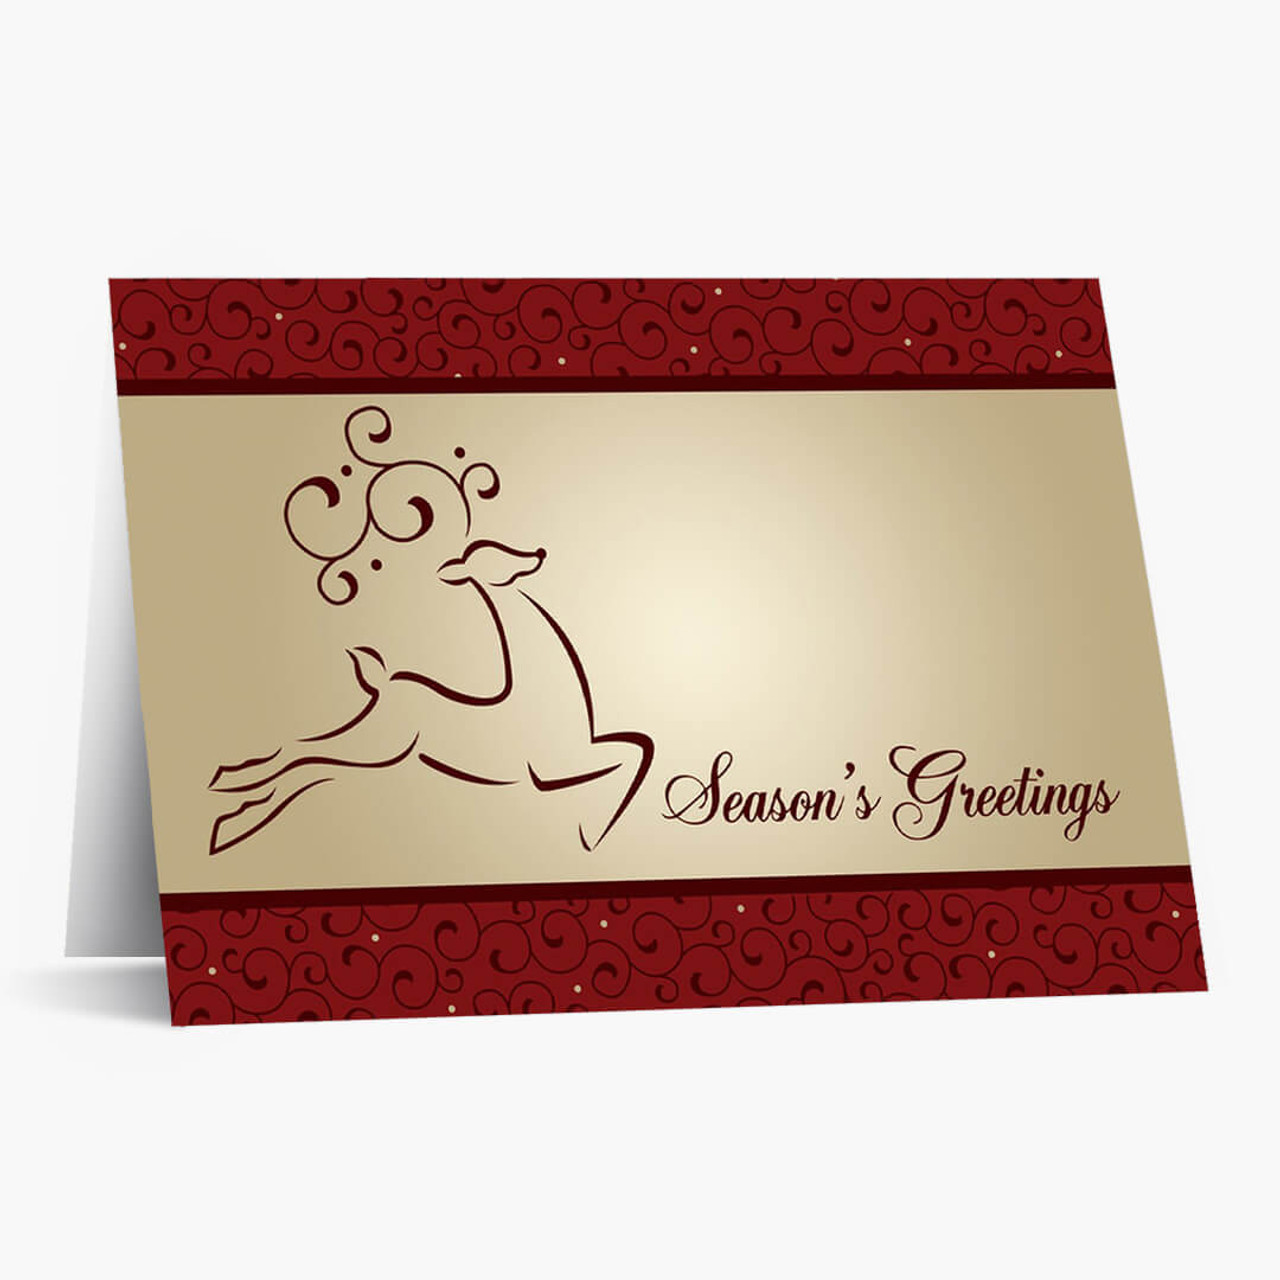 Prancing Christmas Card